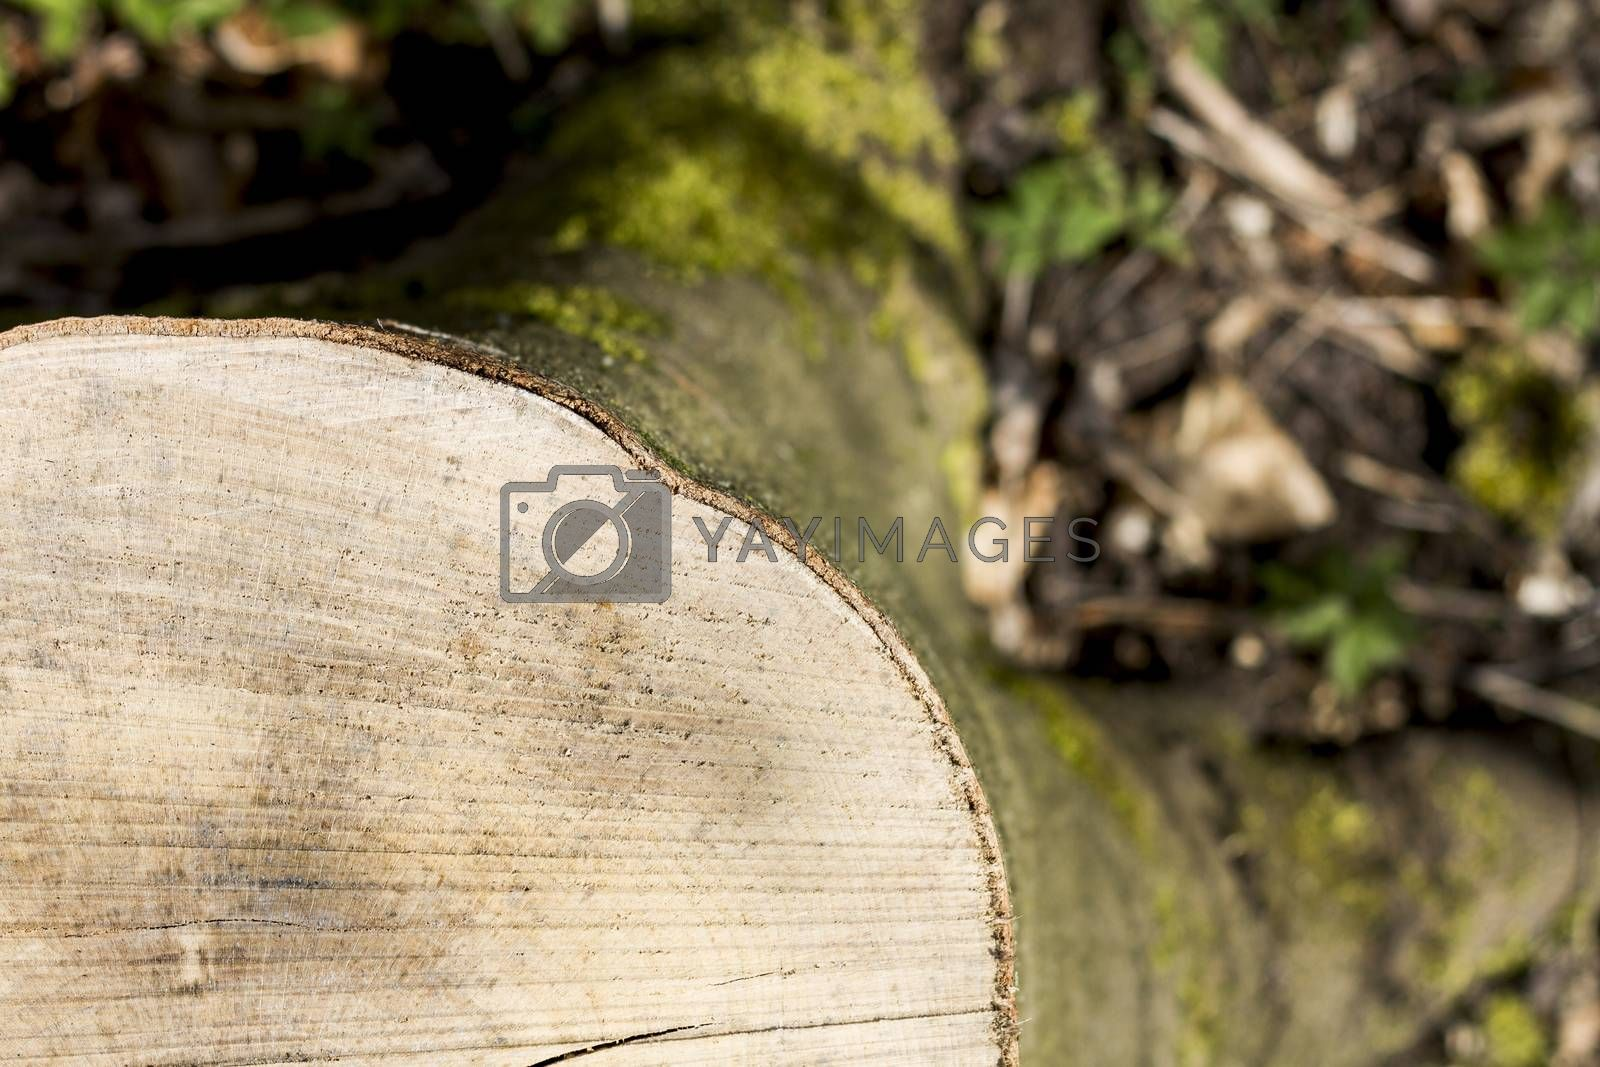 Royalty free image of stump taken from the top by gewoldi